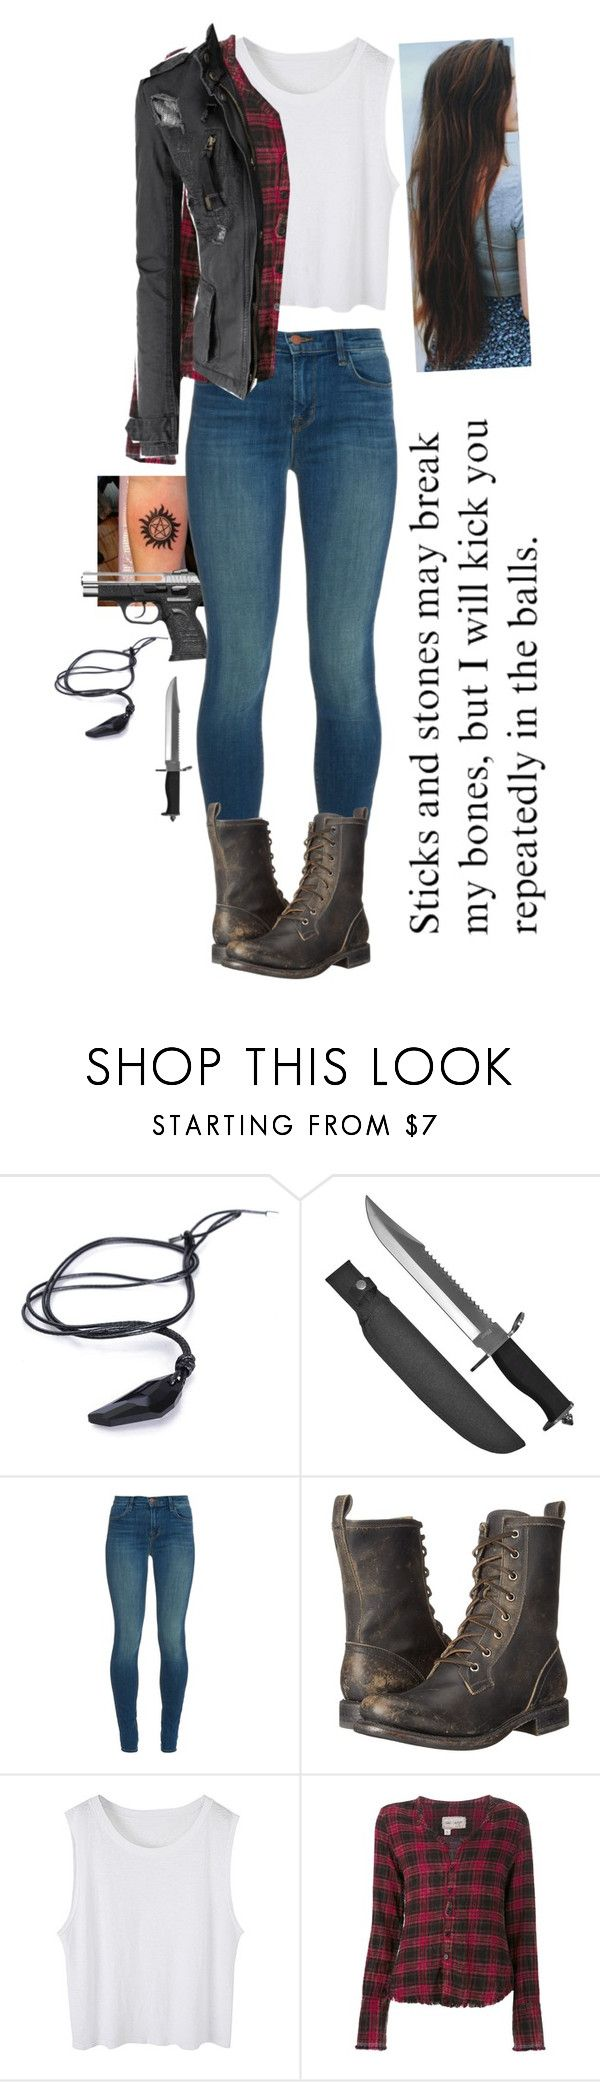 """""""//Saving people, Hunting things, The family business\\"""" by xx-broken-ones-xx ❤ liked on Polyvore featuring Whetstone Cutlery, J Brand, Frye, Greg Lauren and Doublju"""